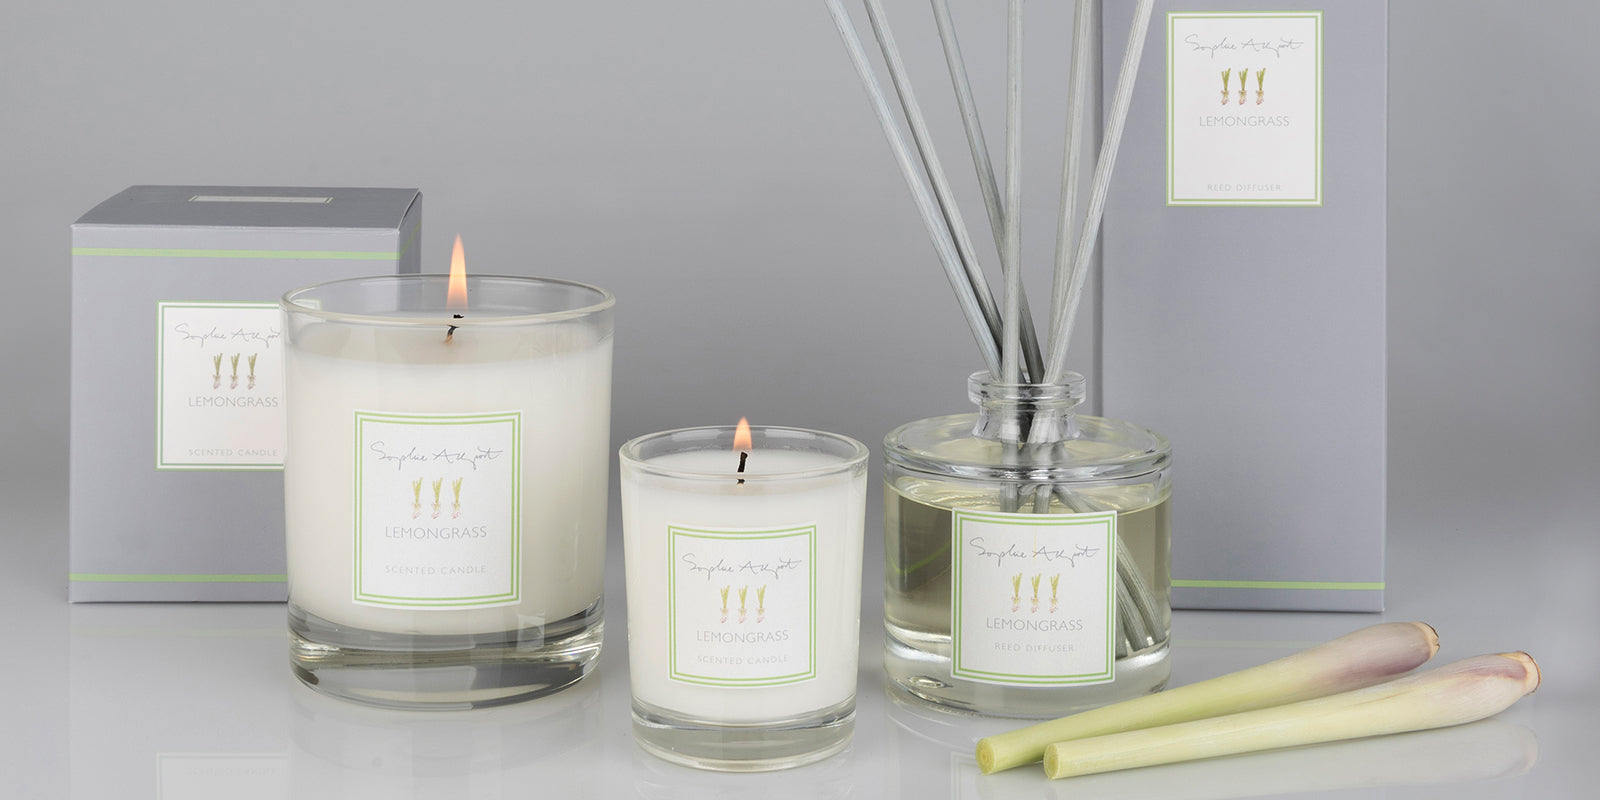 Lemongrass Home Scent by Sophie Allport